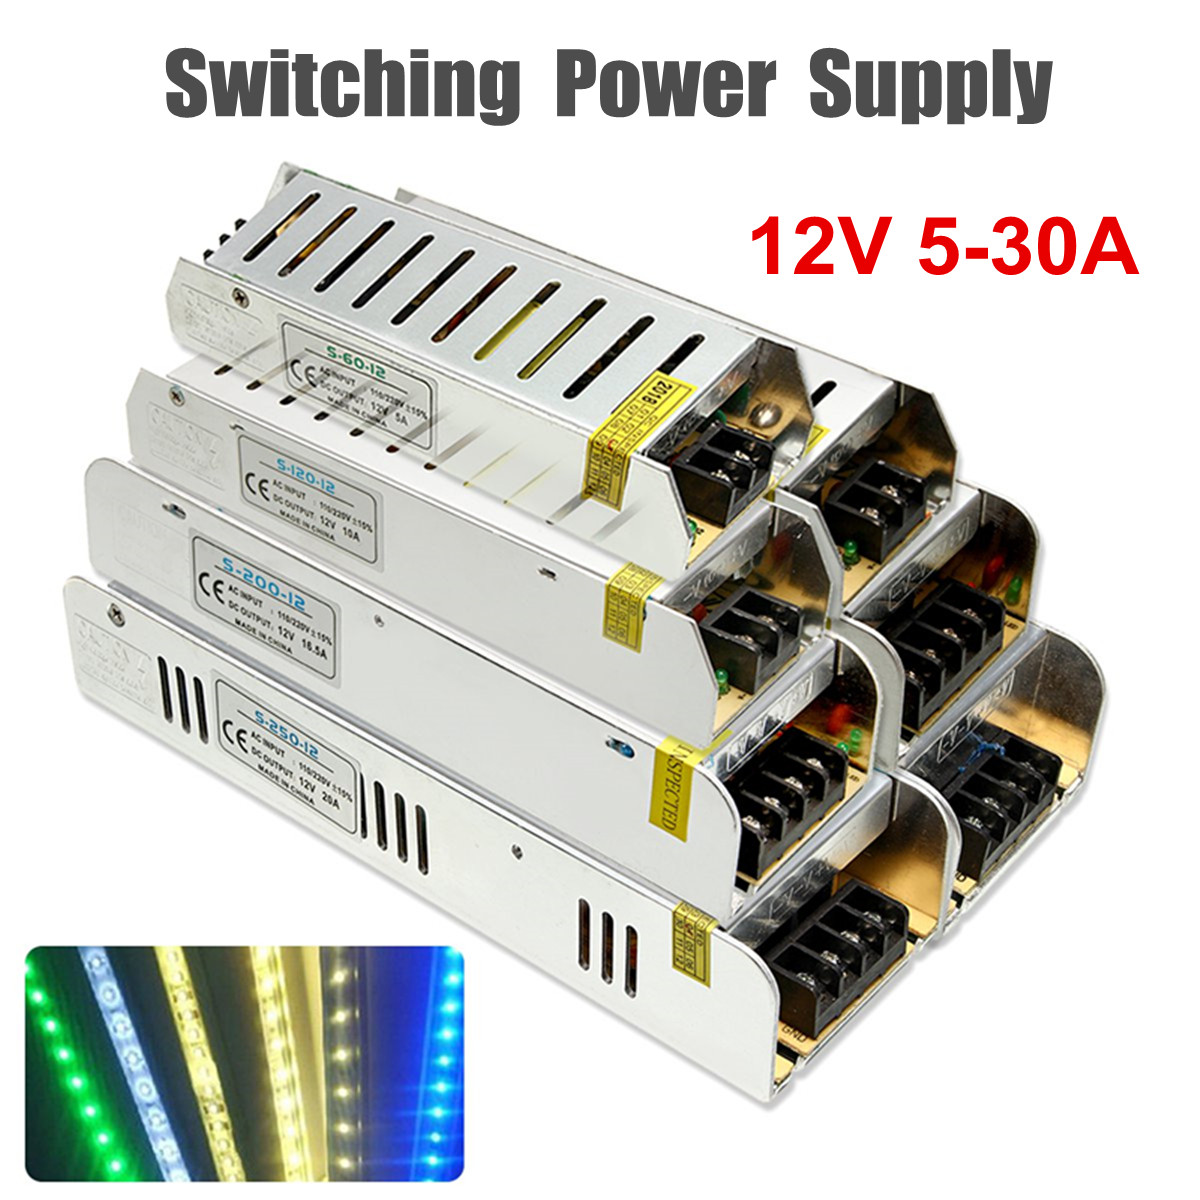 DC 12V 5-30A Sub-Mini Universal Regulated Switching Power Supply For LED Light